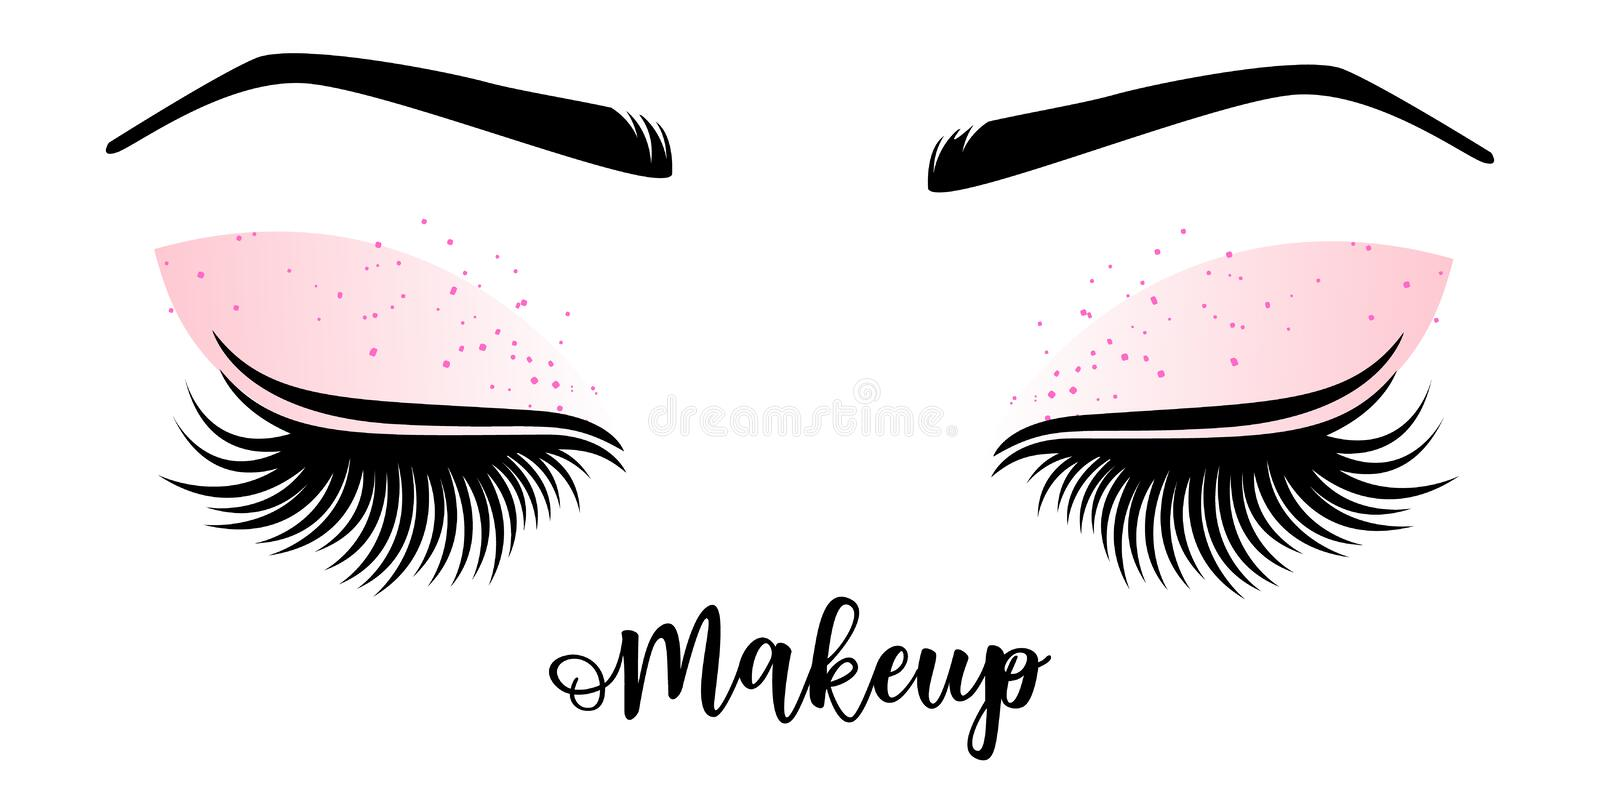 Makeup master logo. Vector illustration of lashes and brow. vector illustration